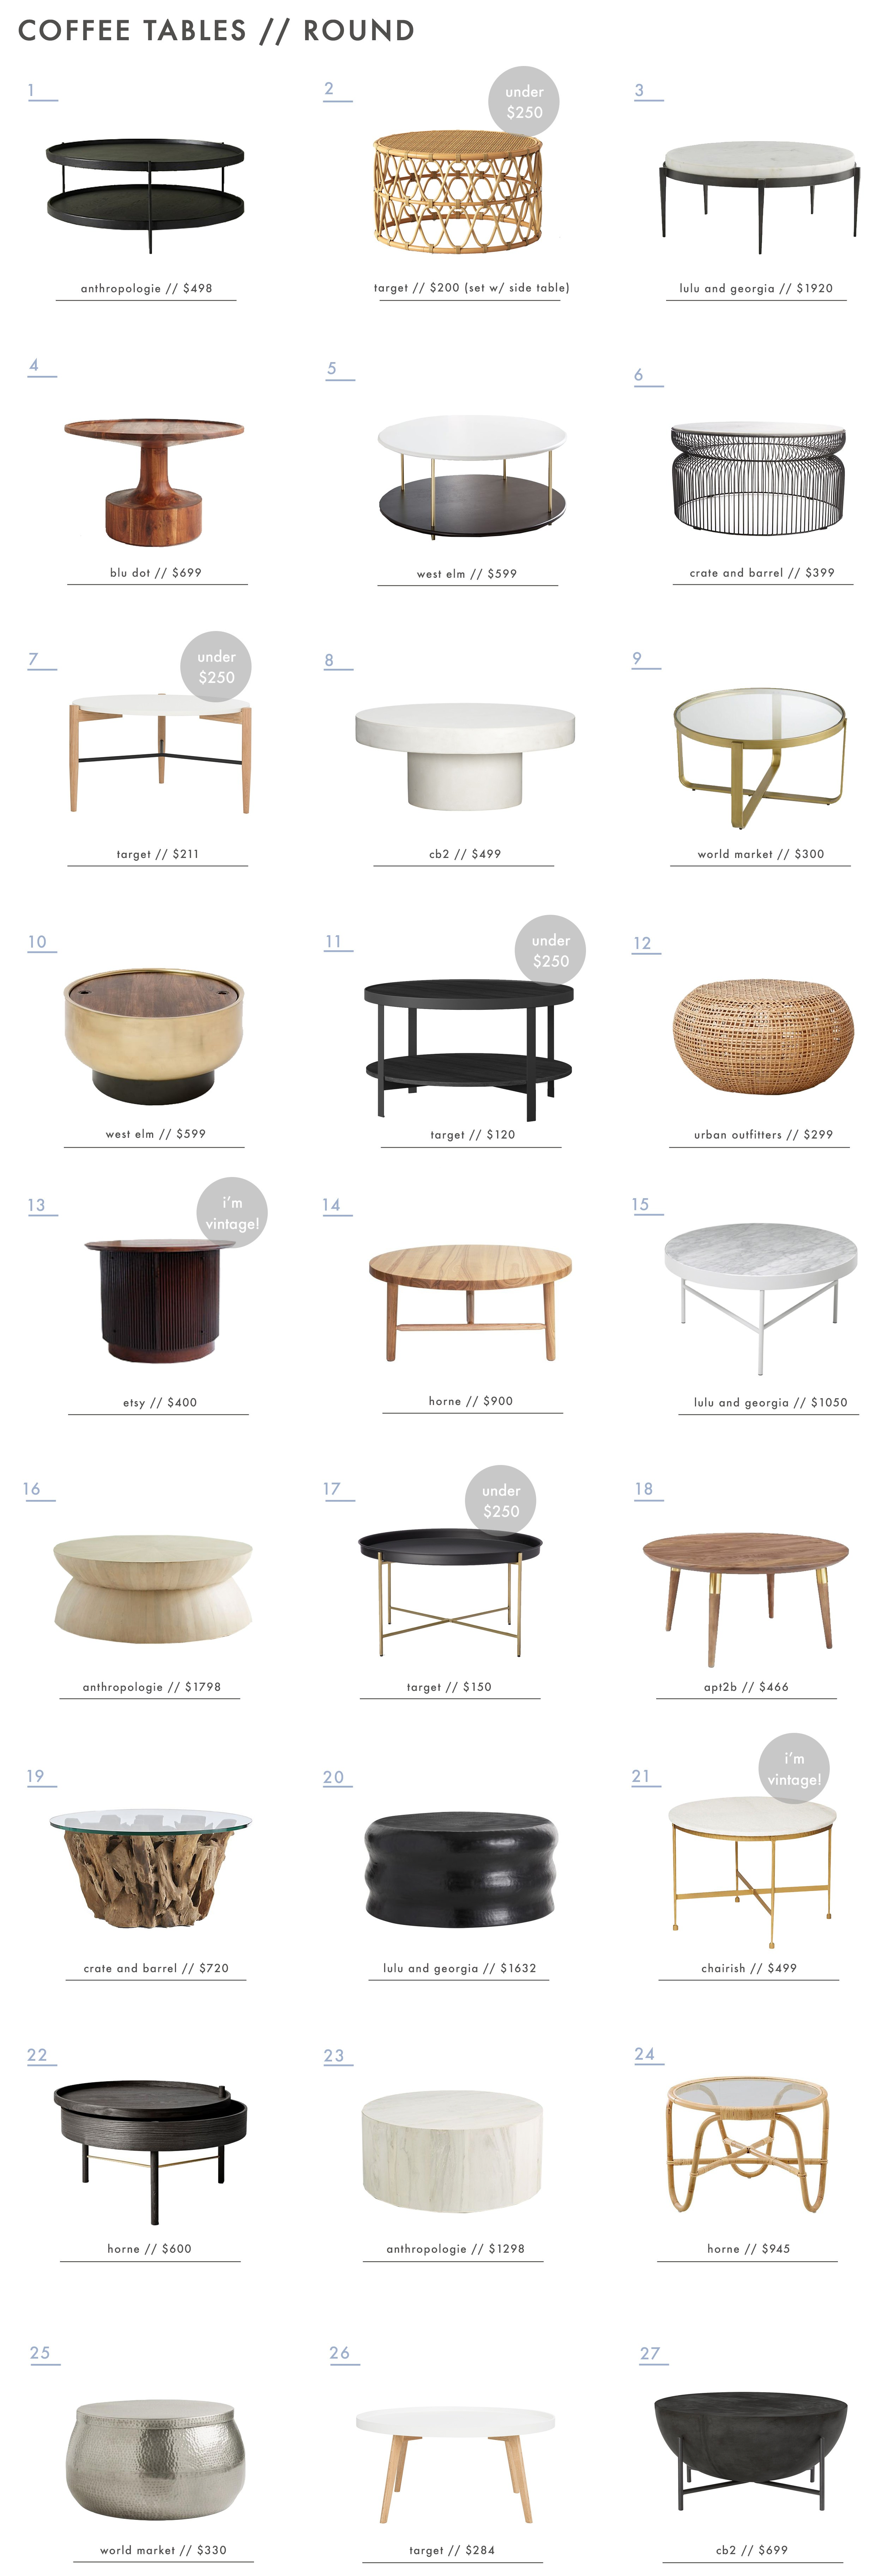 how coffee table for every space emily henderson tables roundup round small half circle accent best curved modern with drawer wood target white metal chairs black canvas patio